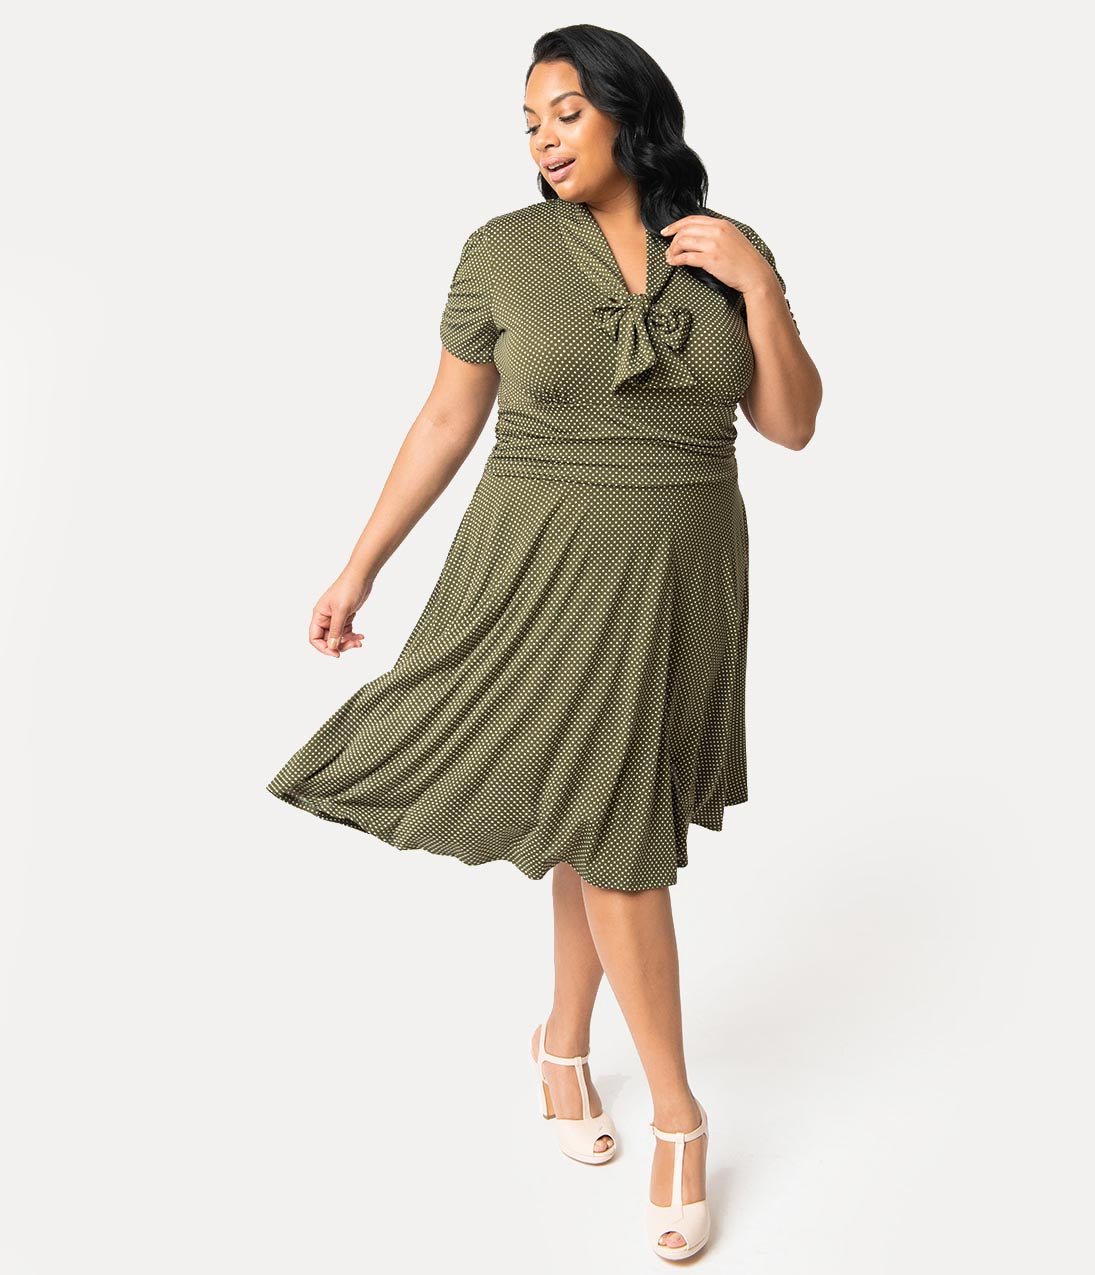 1940s Plus Size Fashion: Style Advice from 1940s to Today Folter Plus Size 1940S Style Olive Green  White Pin Dot Neck Tie Swing Dress $72.00 AT vintagedancer.com